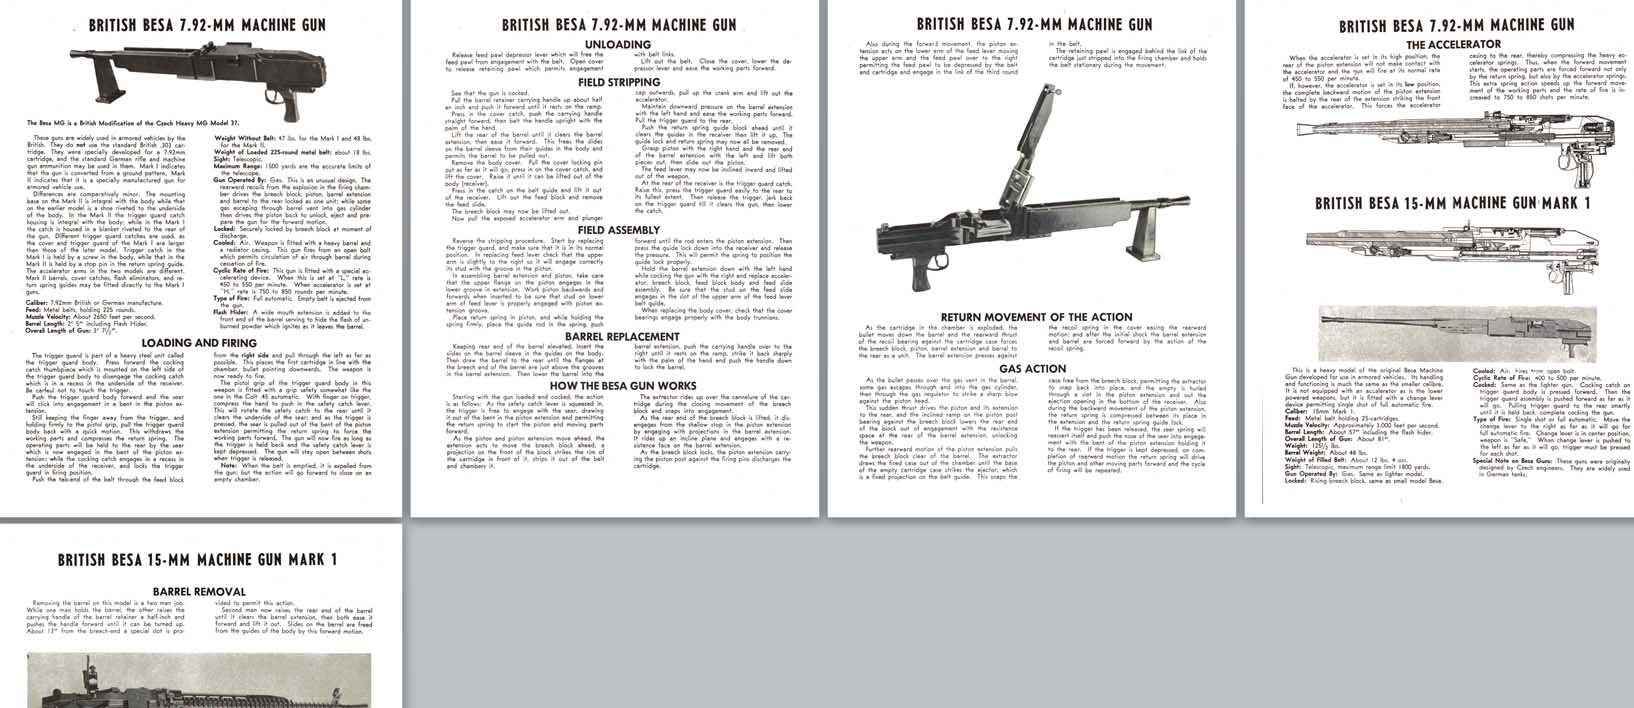 BESA (British) 7.92mm Machine Gun Manual